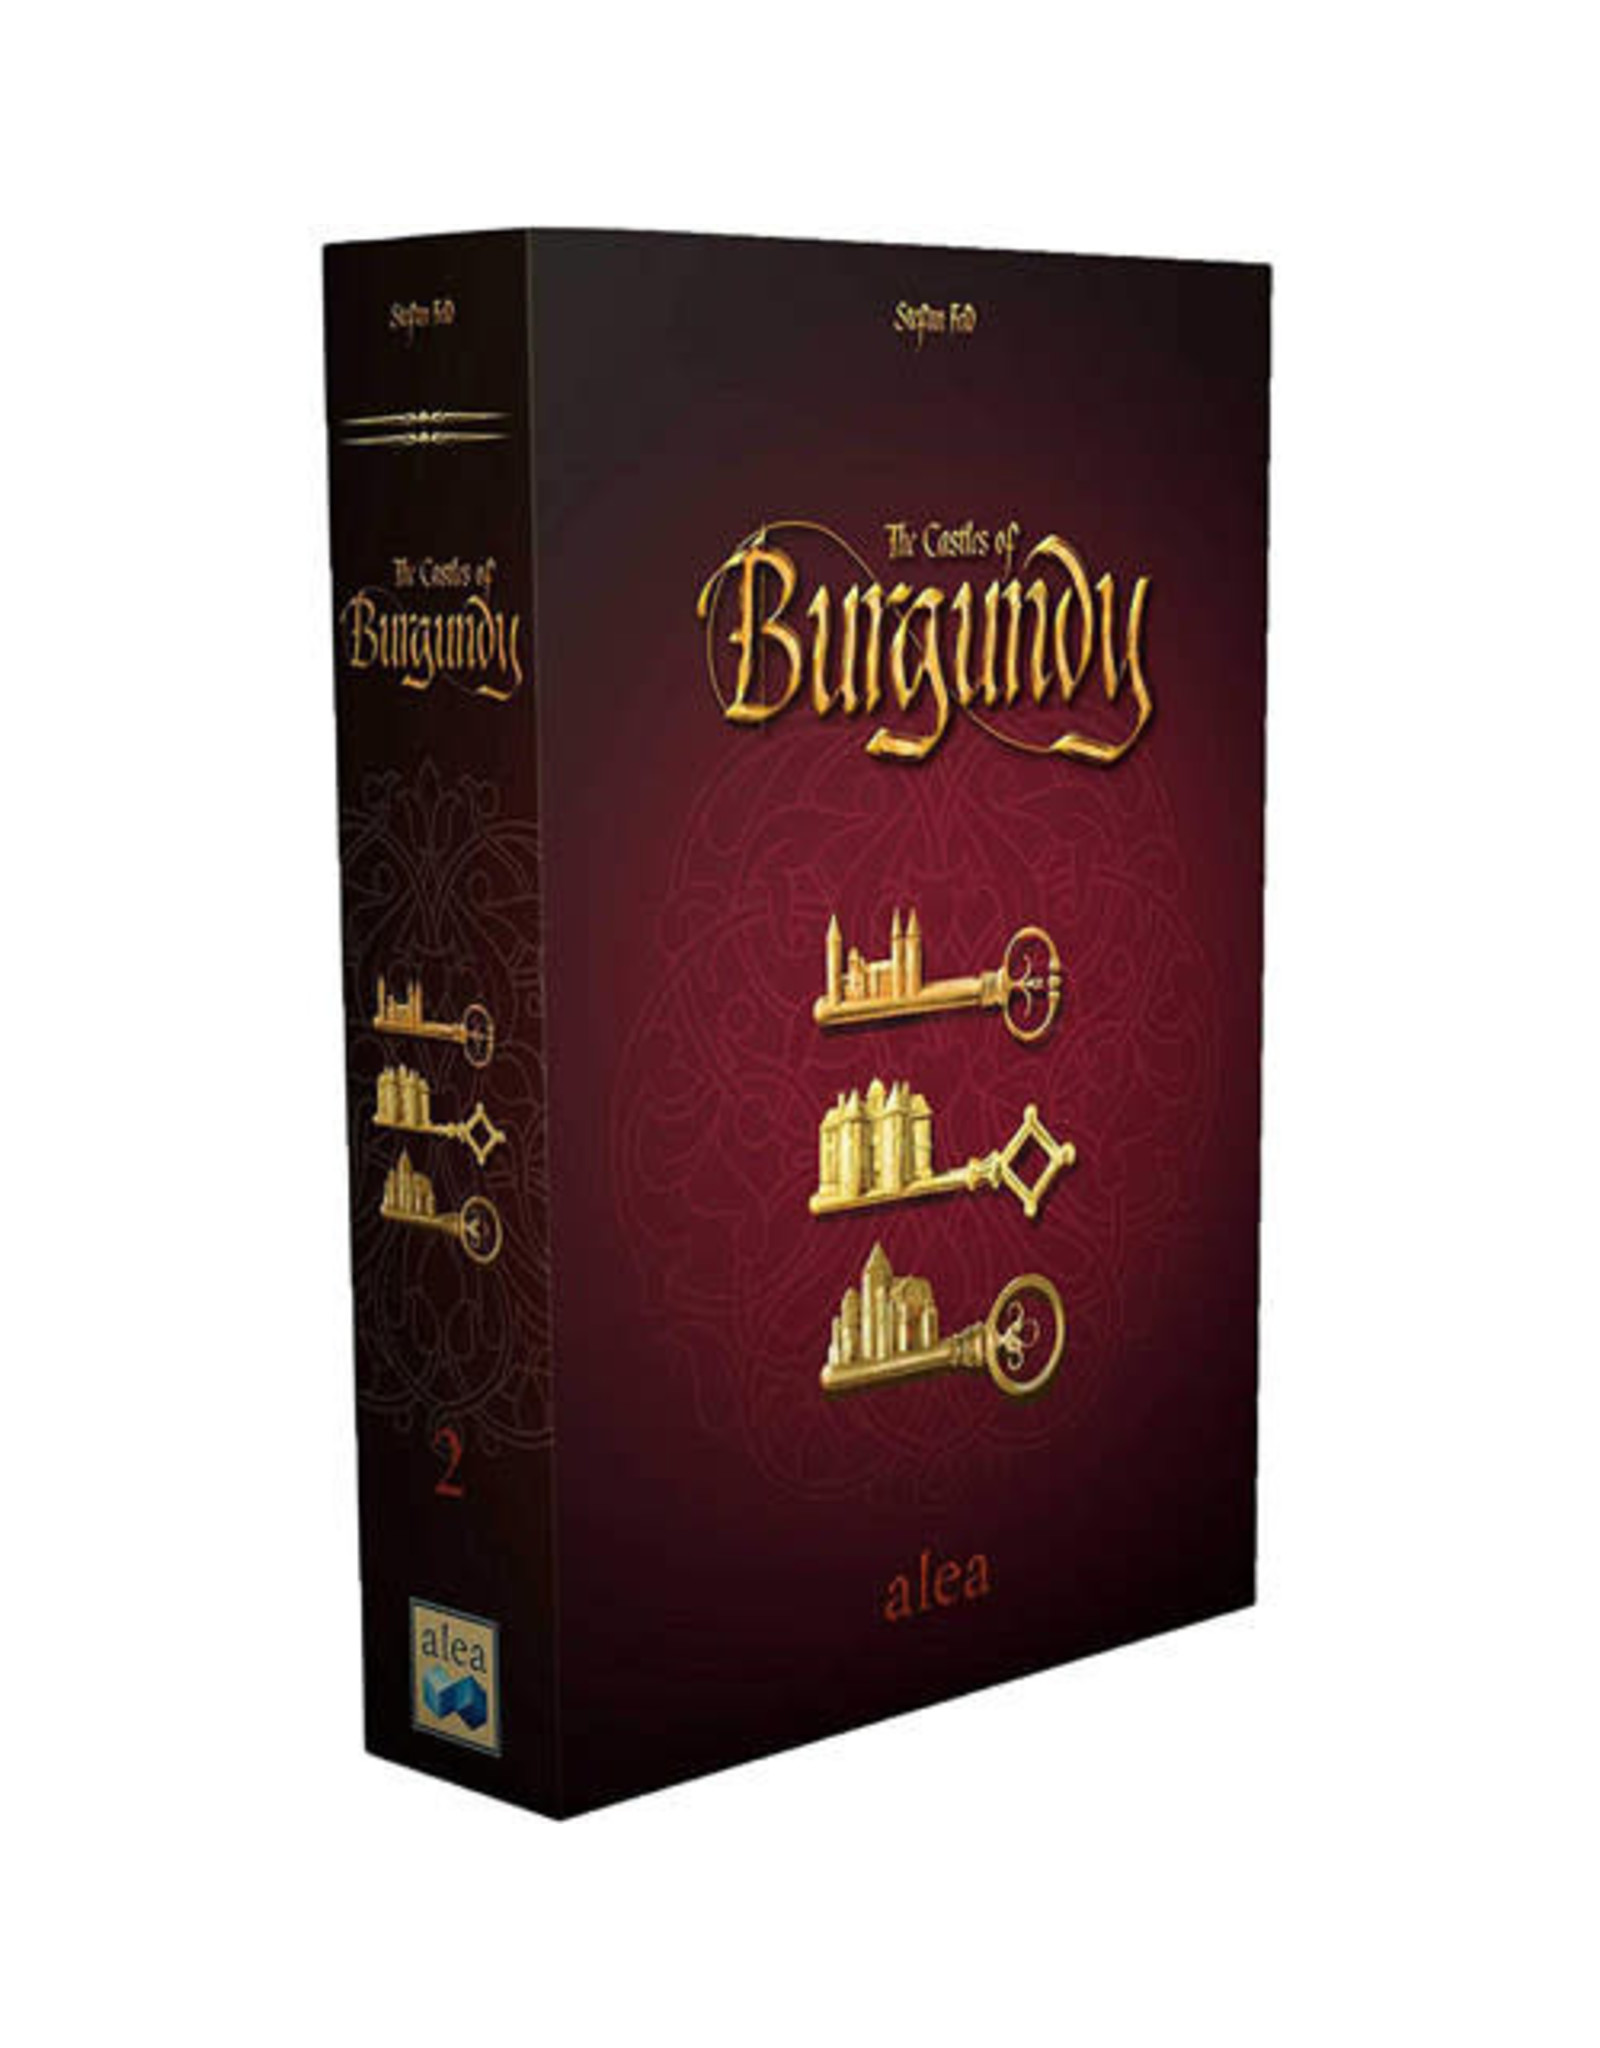 Castles of Burgundy 20th Anniversary Board Game